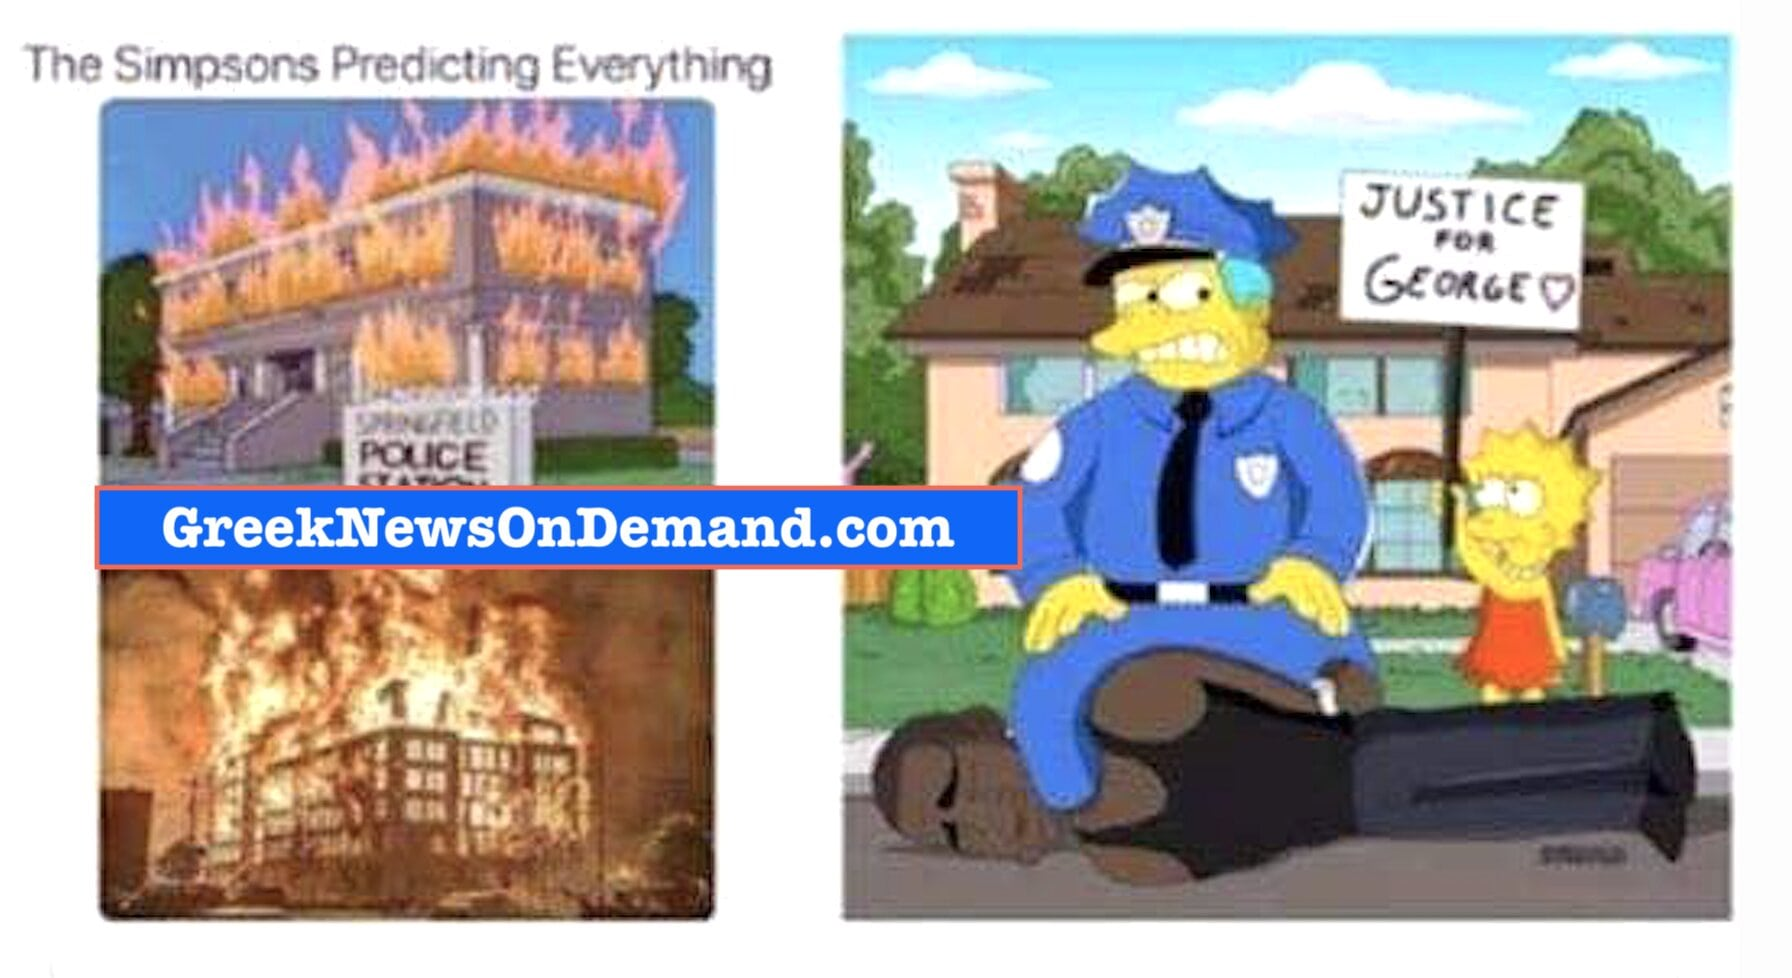 George Floyd's death predicted on the… SIMPSONS. The Sheeple are ALIVE AND WELL….